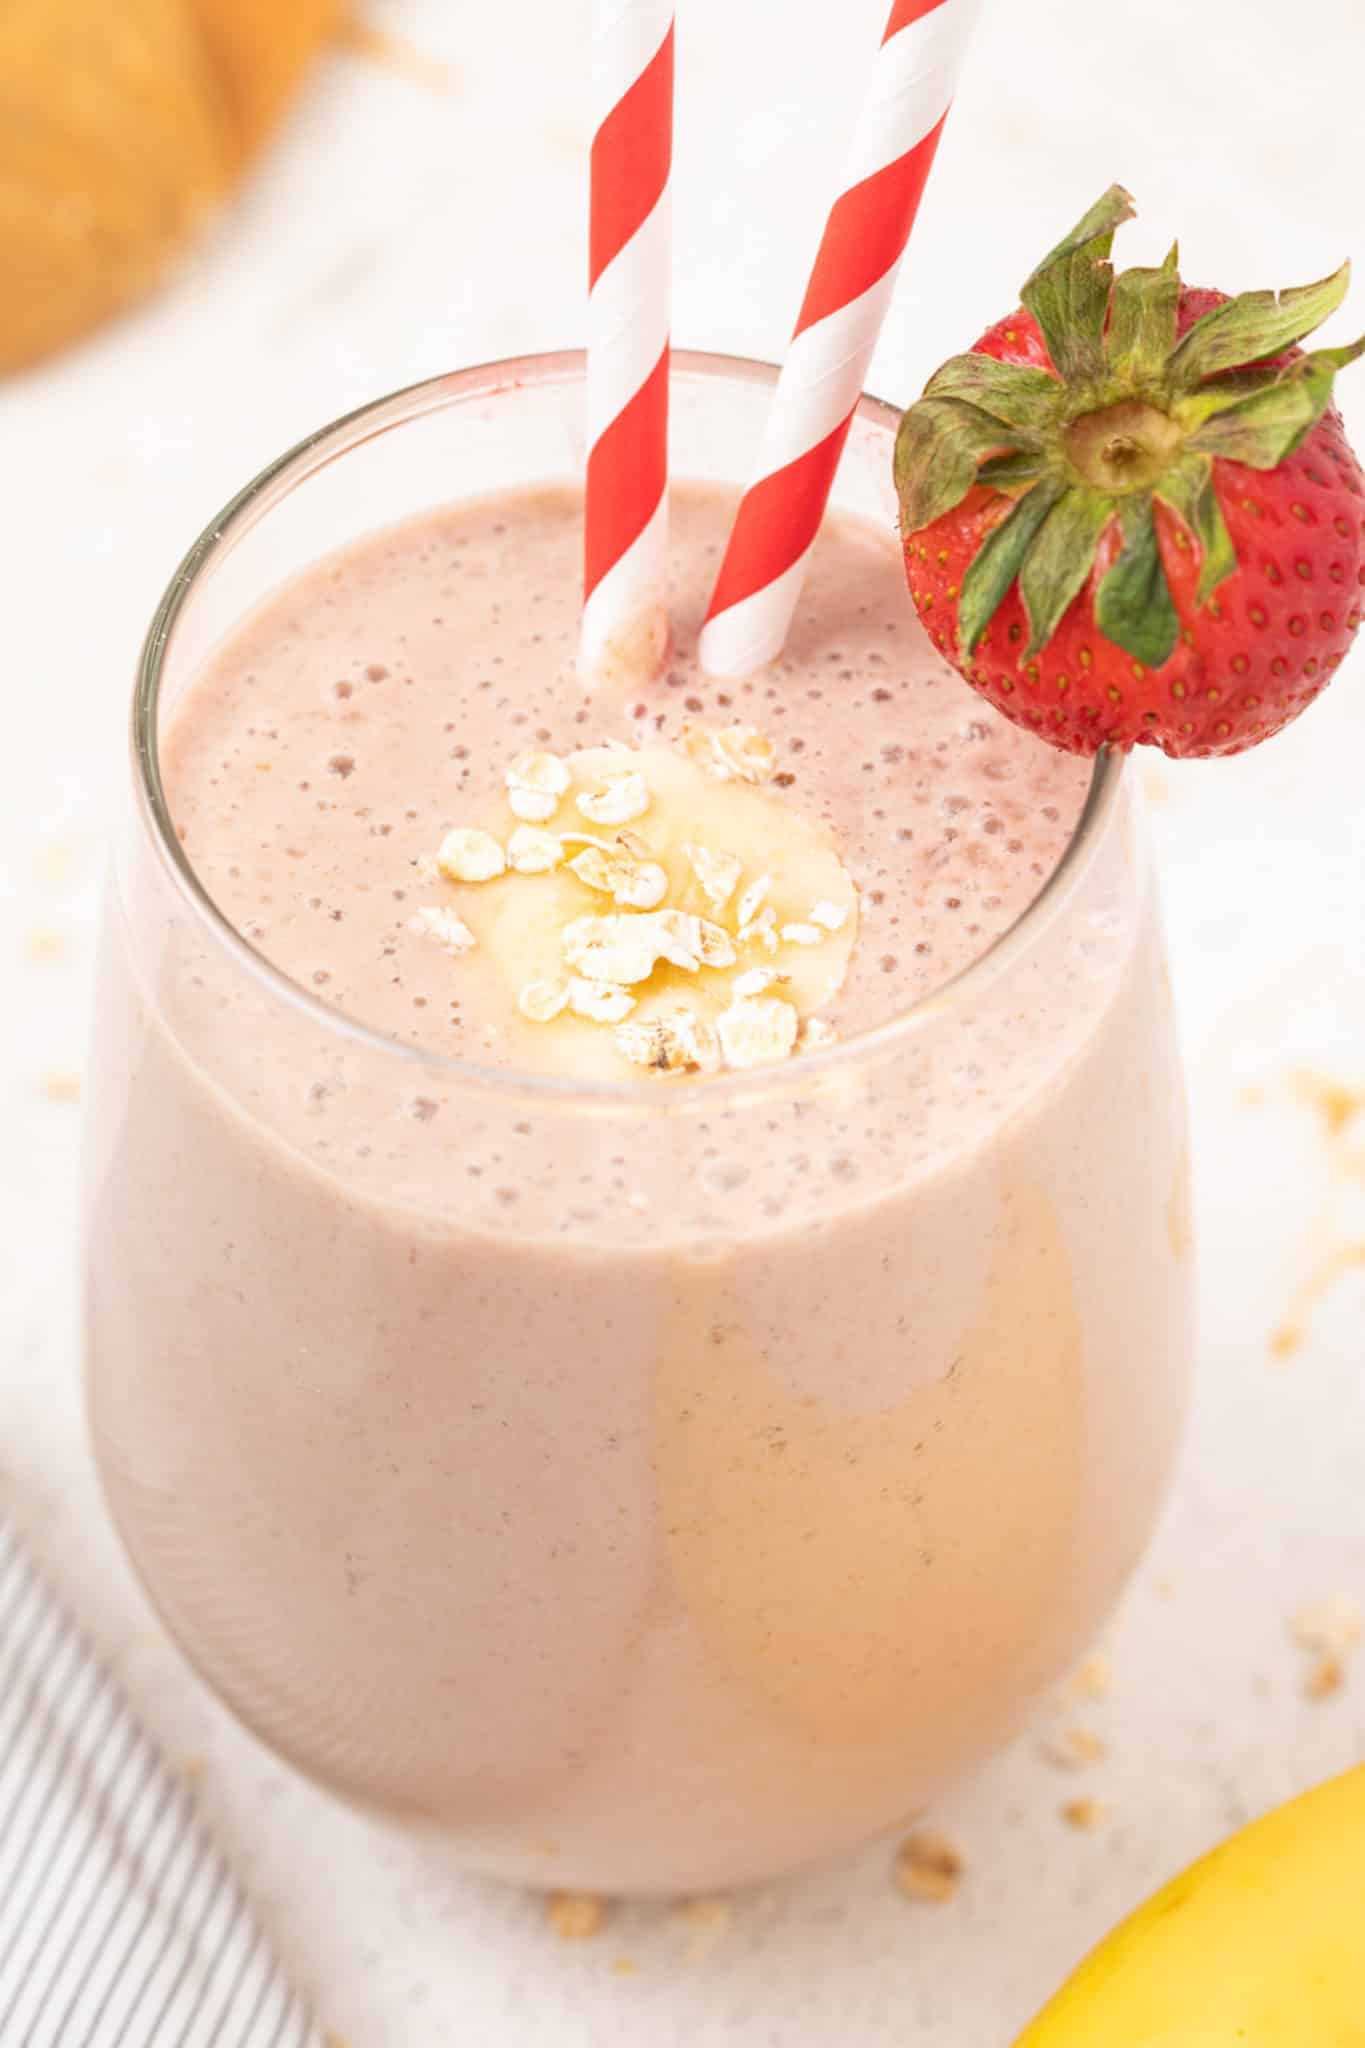 Oat milk strawberry banana smoothie served in a glass